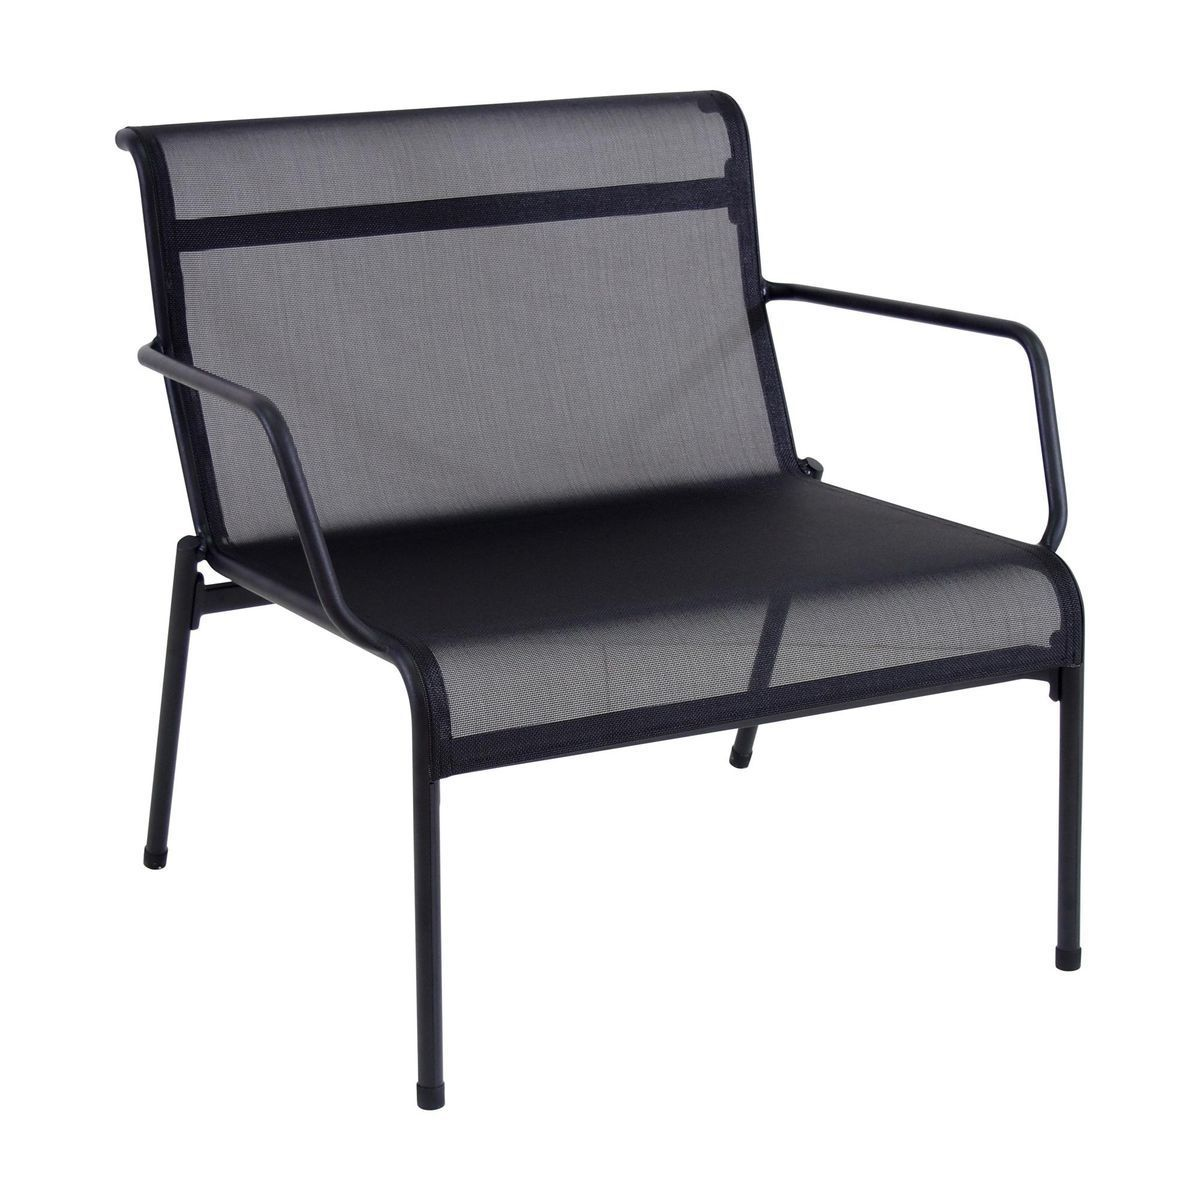 emu kira lounge chair outdoor blackemutex